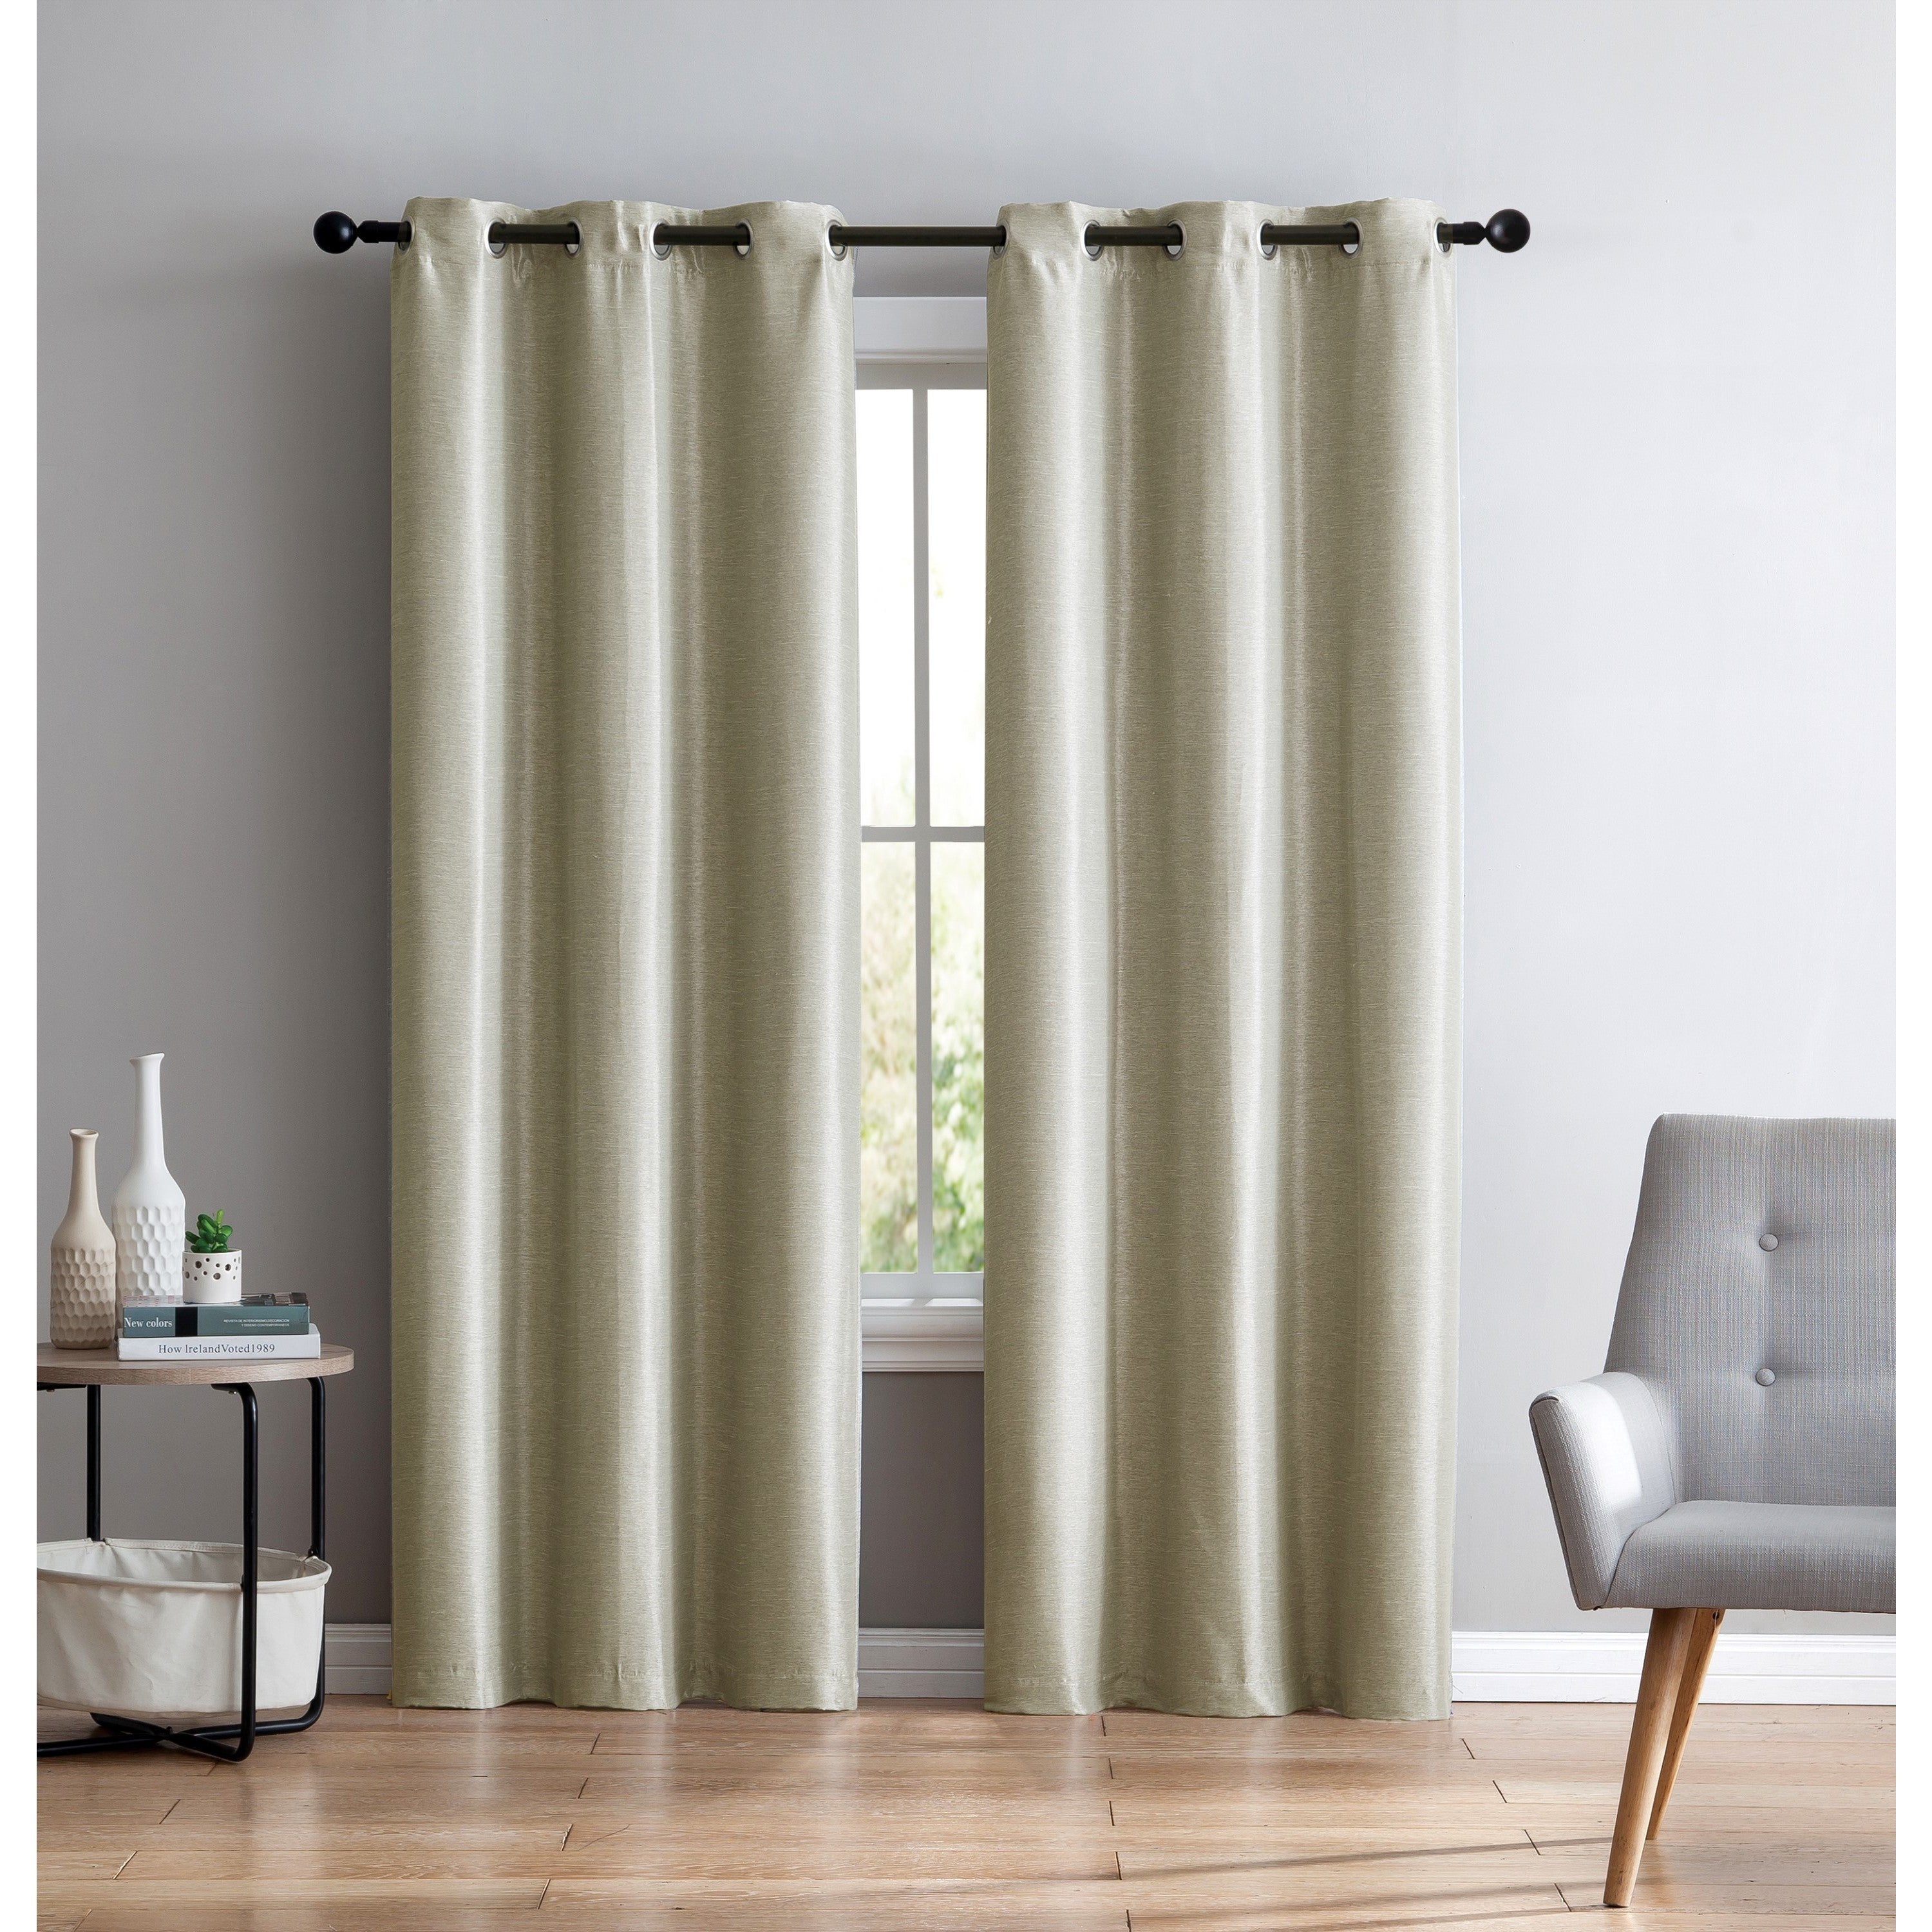 Vcny Home Arlenis Faux Silk Blackout Panel Pair Pertaining To Overseas Faux Silk Blackout Curtain Panel Pairs (View 8 of 20)